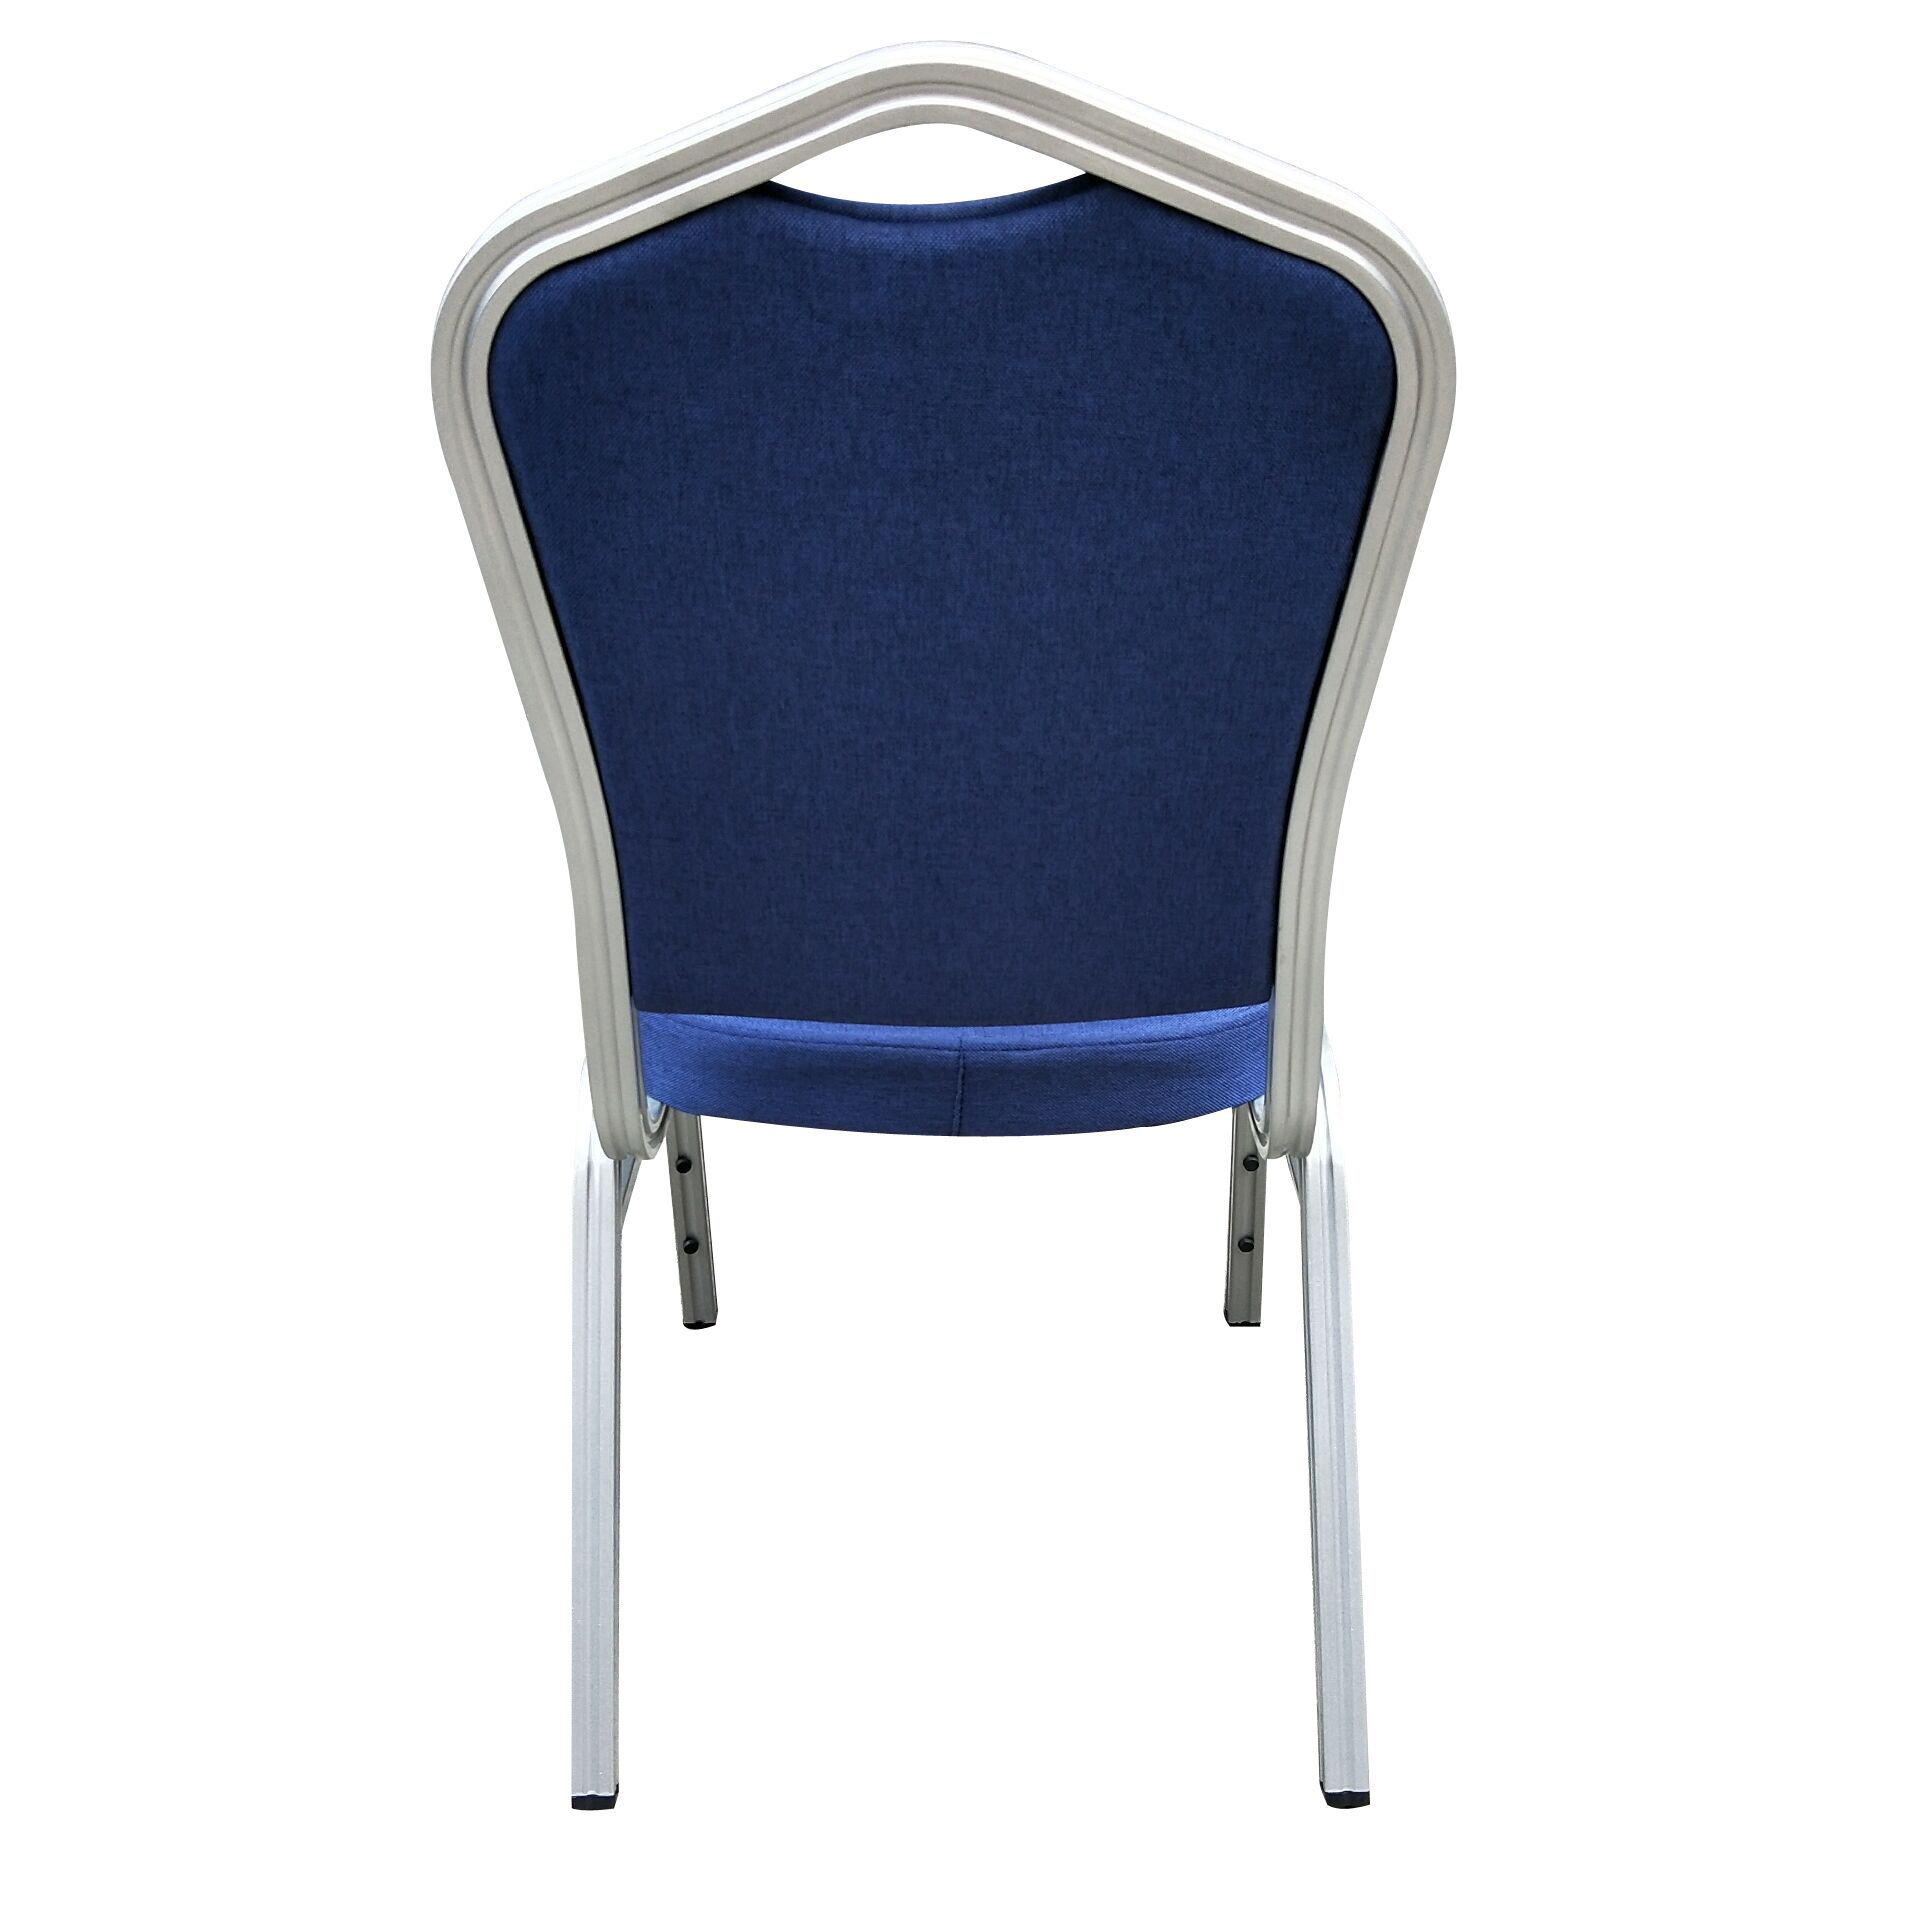 Original Factory Interlocking Auditorium Useding Chair -